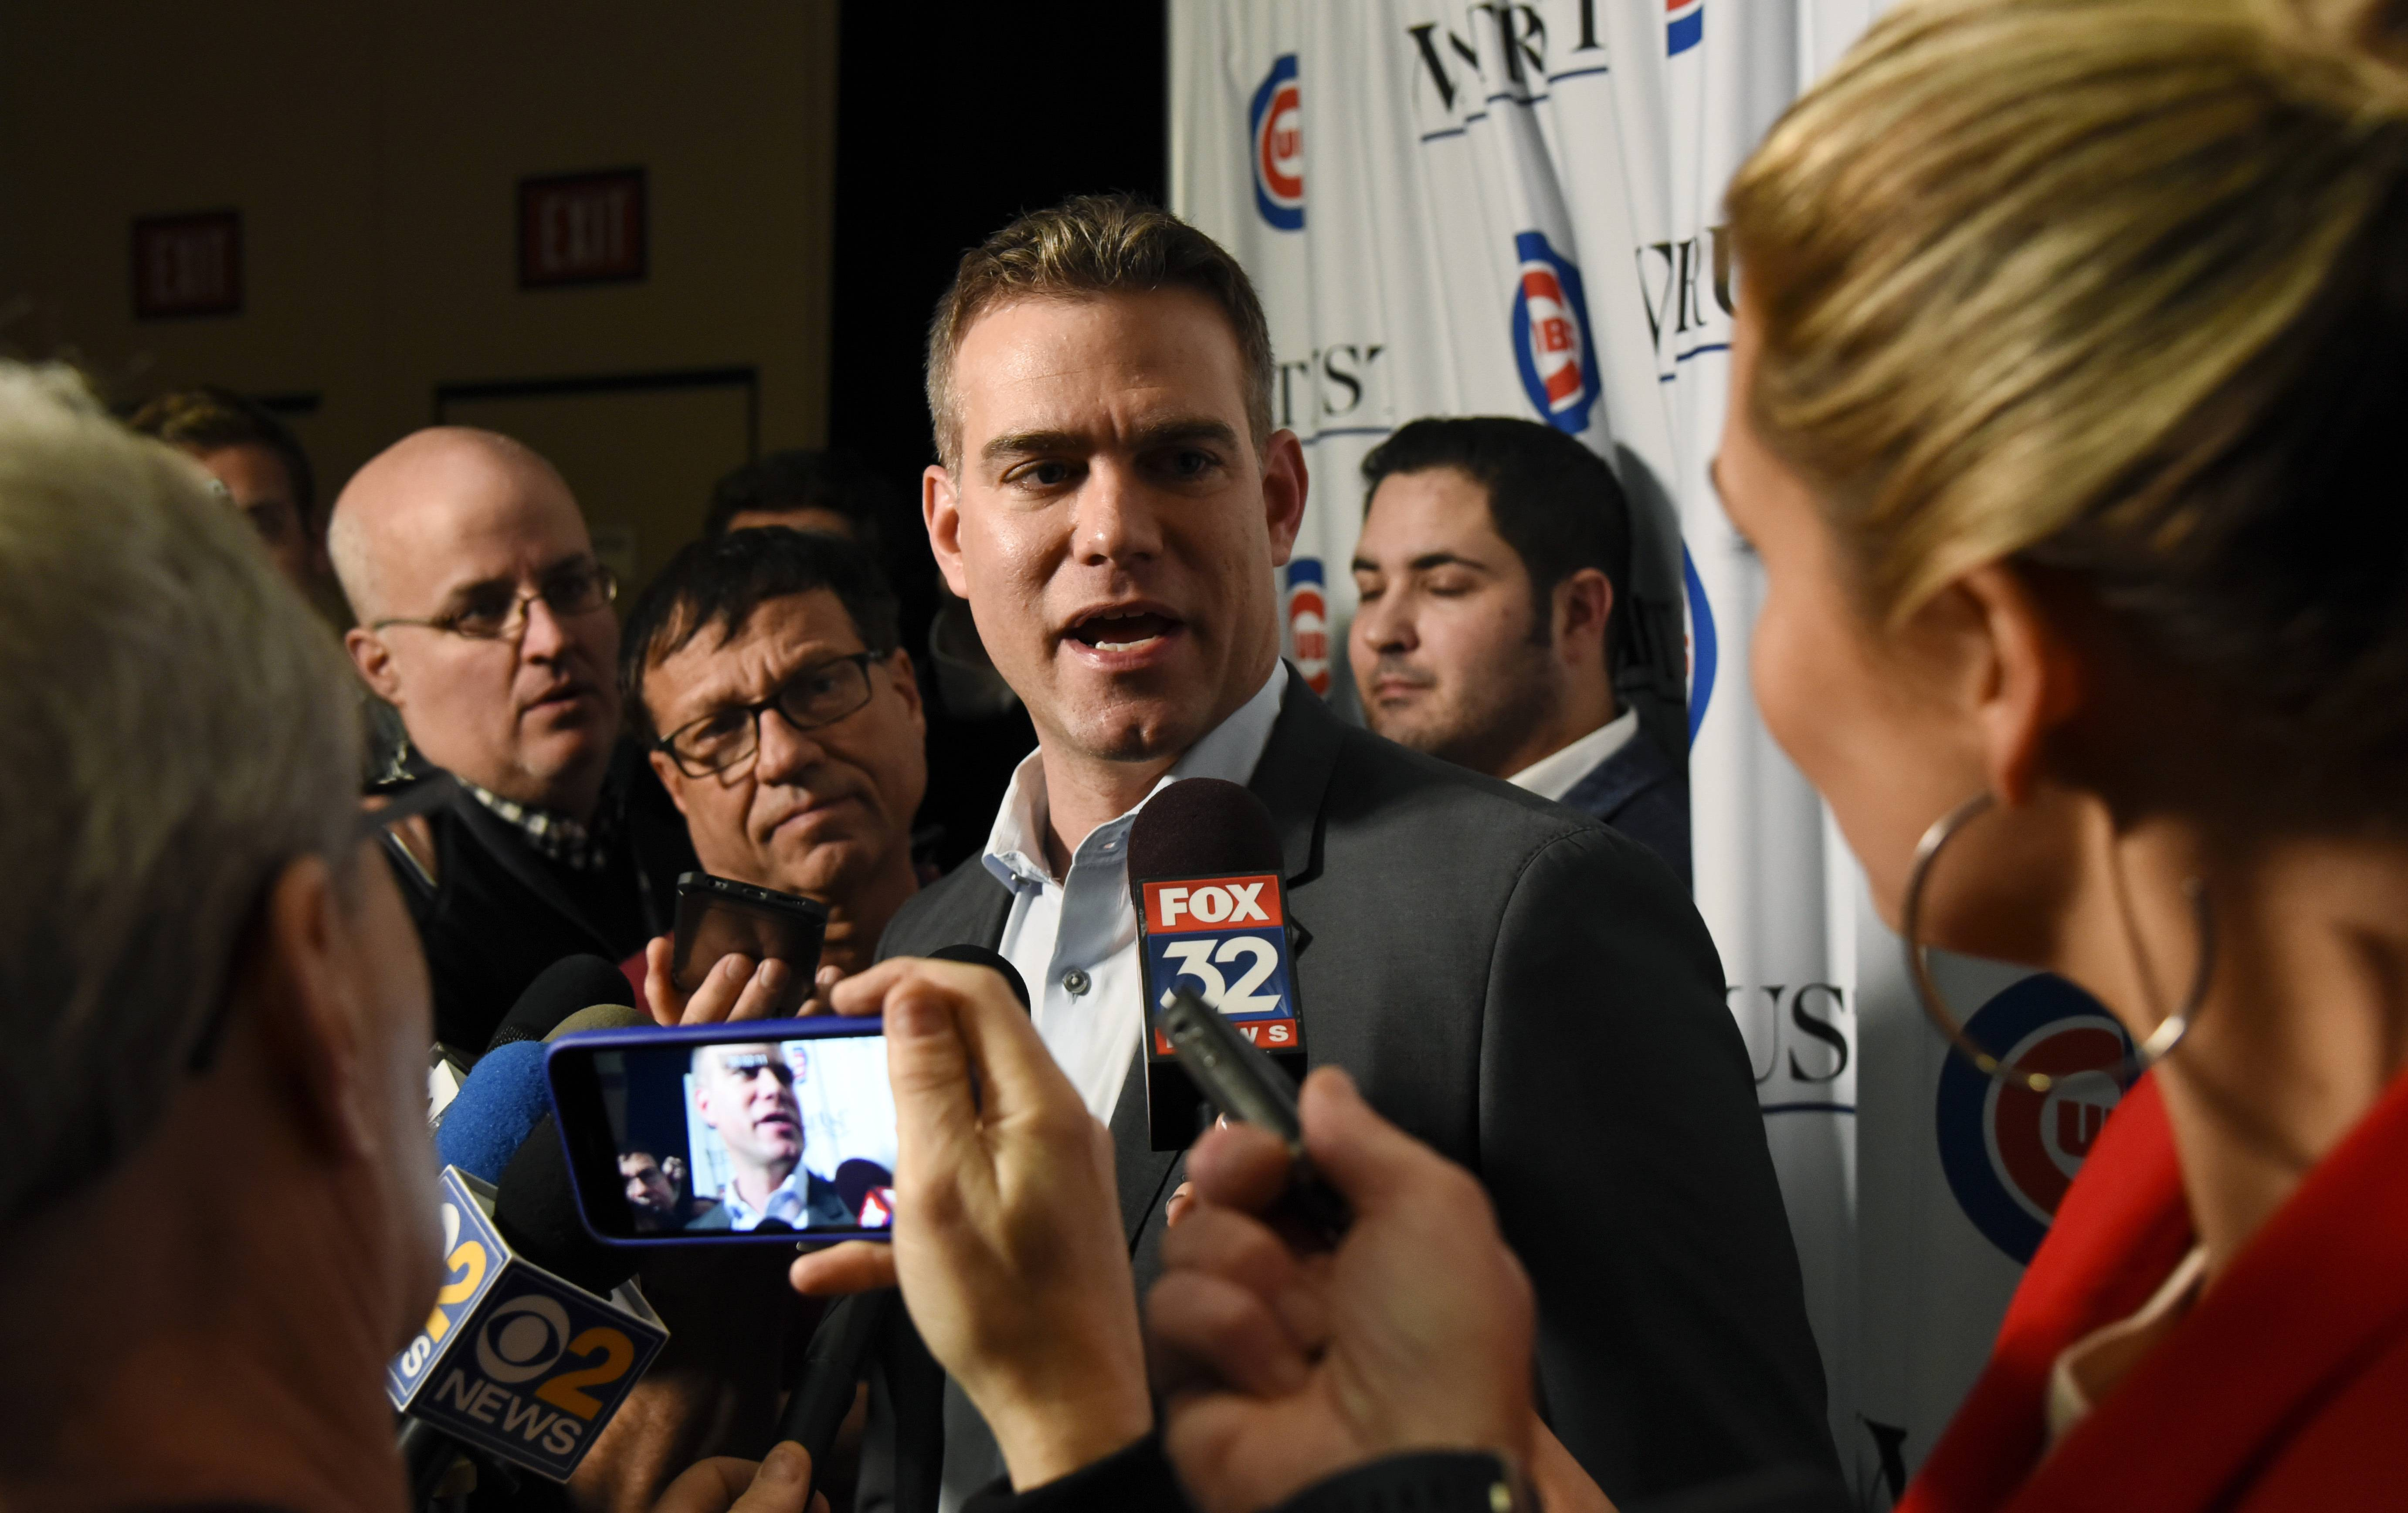 The Chicago Cubs fan convention opened Friday, and team president Theo Epstein said he has heard loudly and clearly the concerns of the fans this off-season.